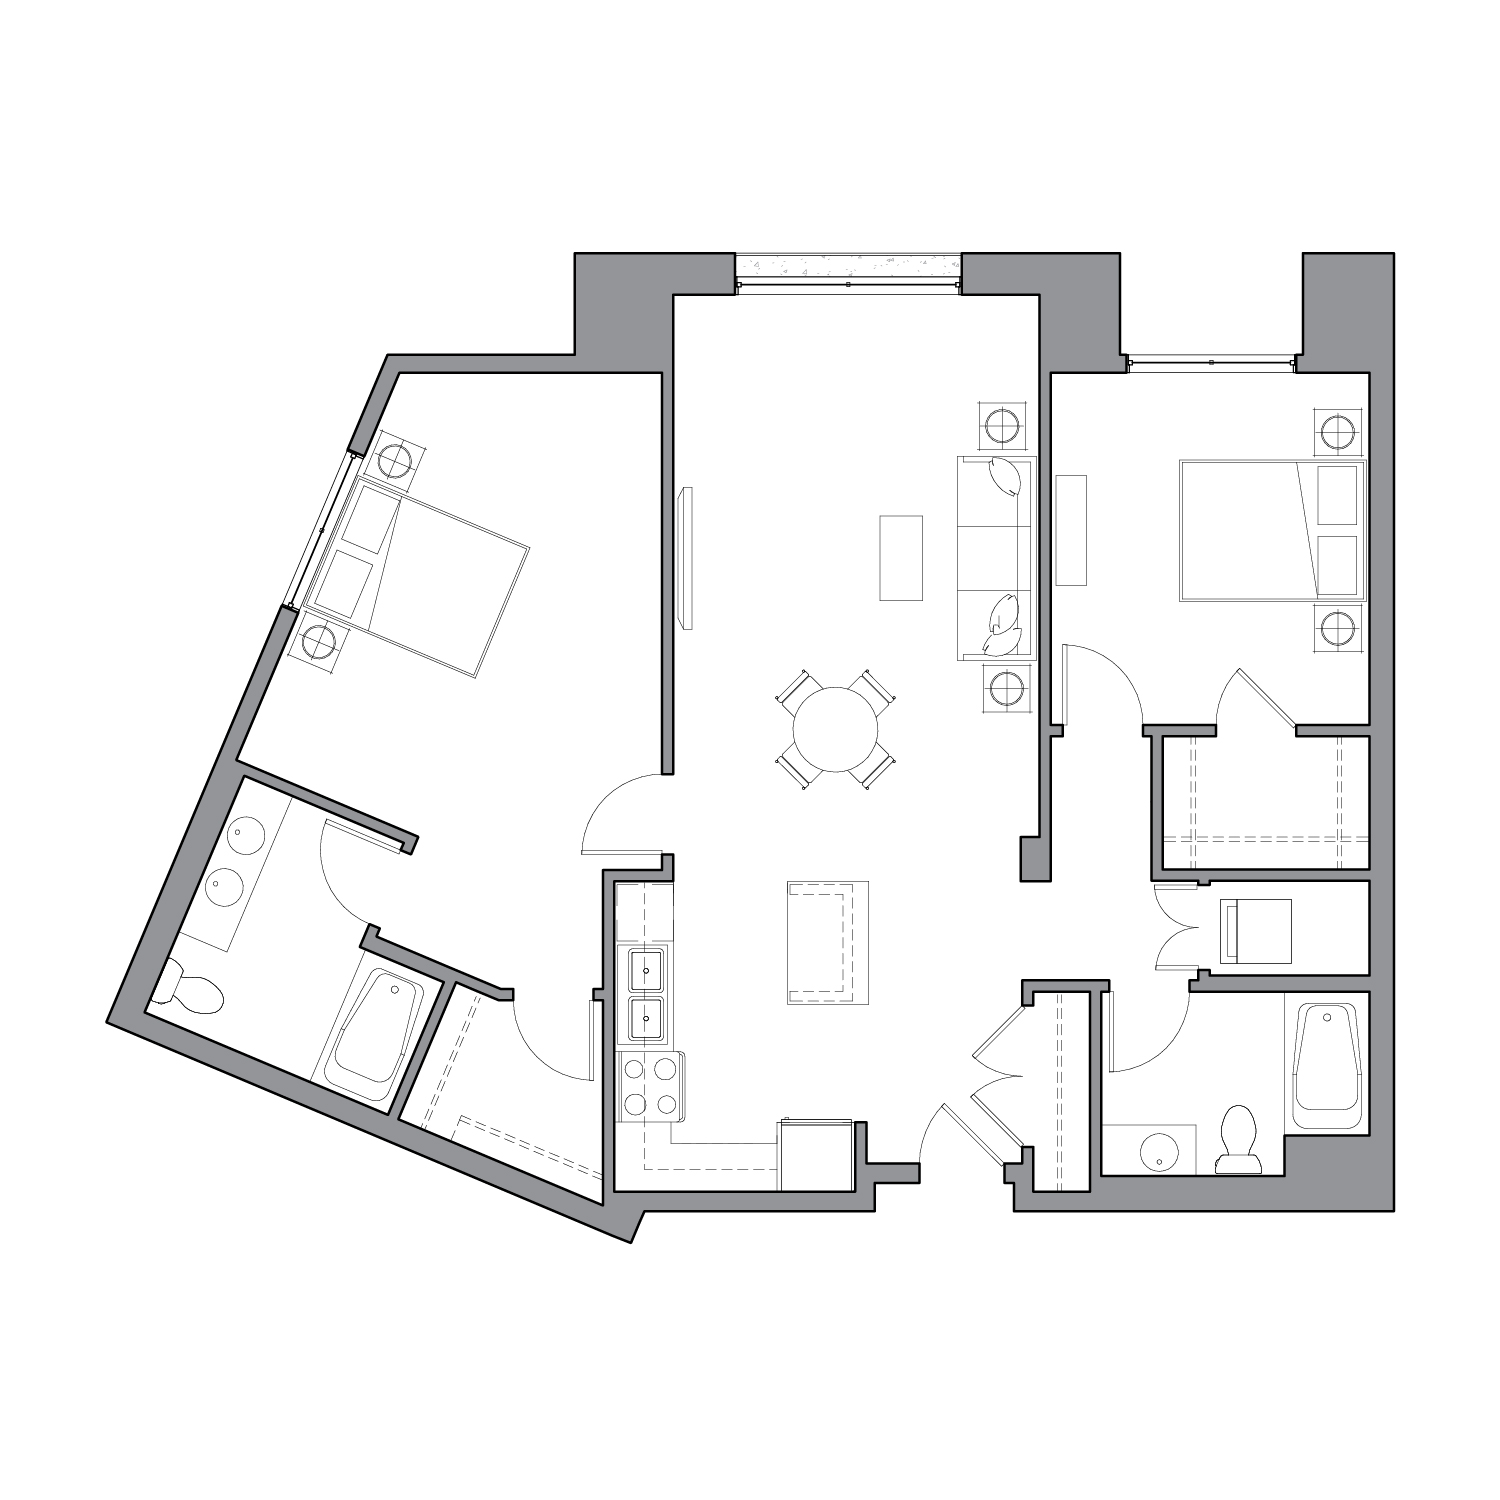 Floor plan diagram with three bedrooms, two bathrooms, and an open kitchen dining and living space